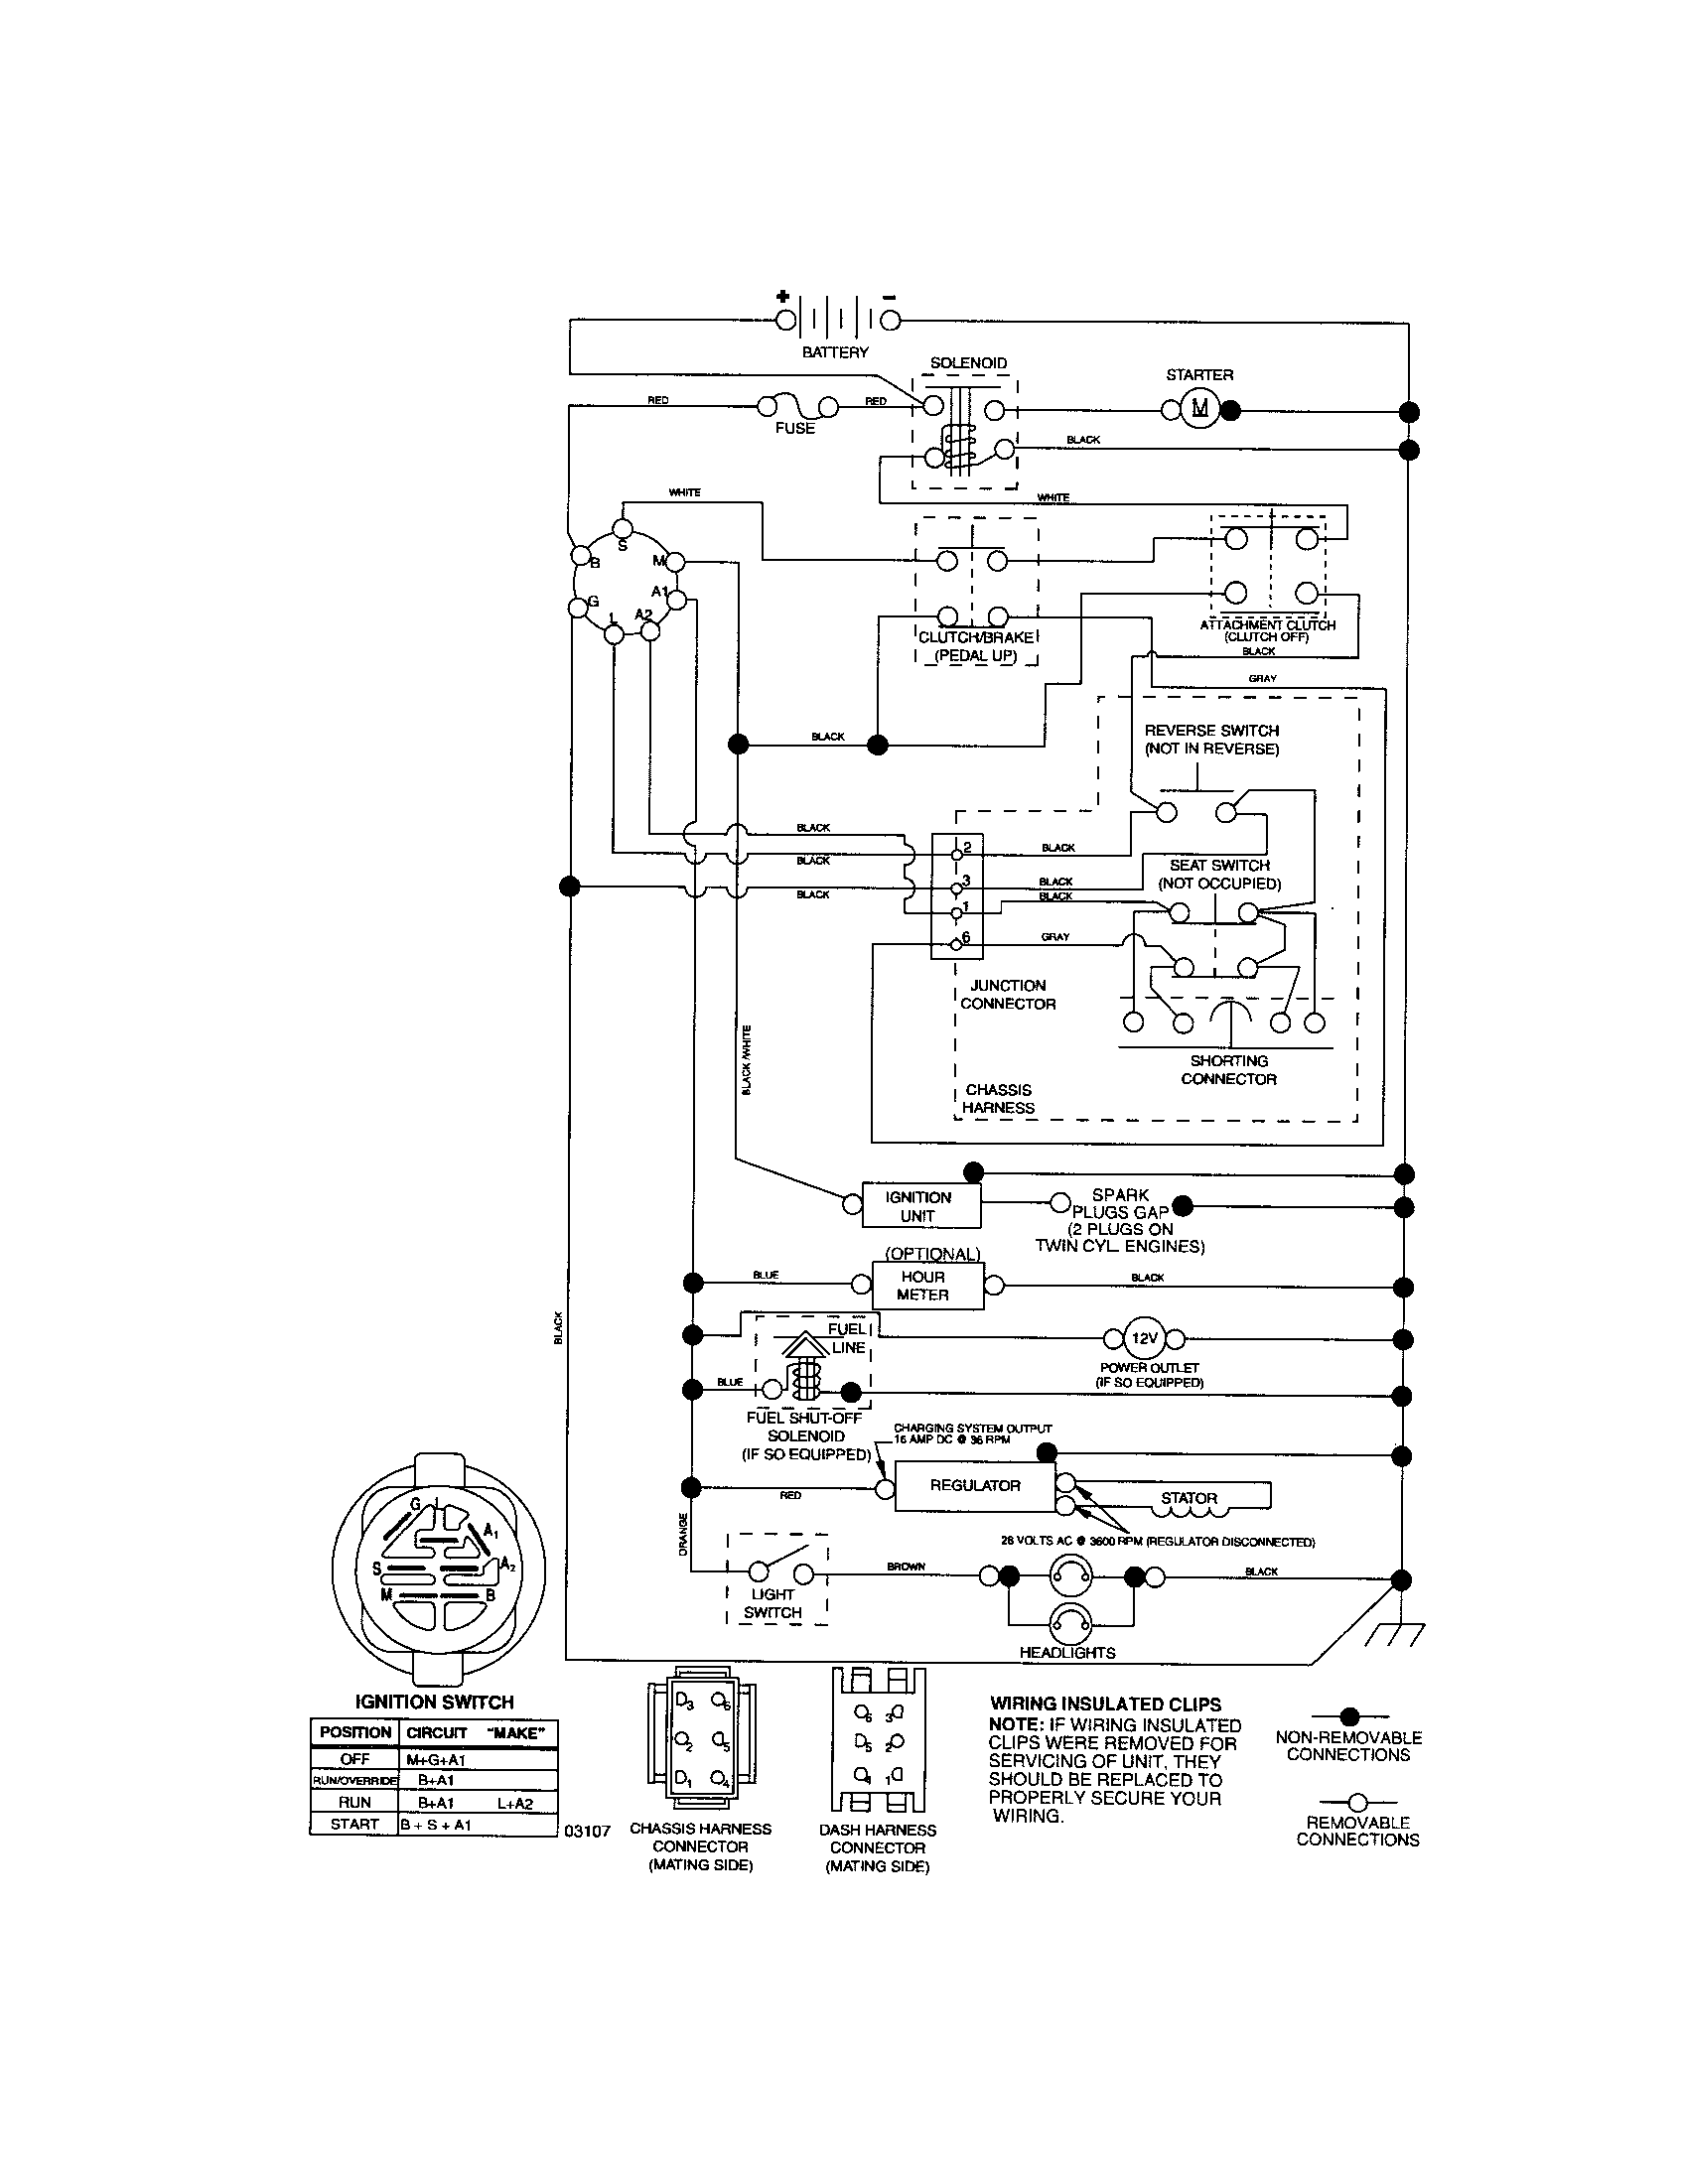 craftsman riding mower electrical diagram wiring diagram craftsman rh pinterest com Riding Lawn Mower Wiring Diagram Lawn Mower Switch Wiring Diagram